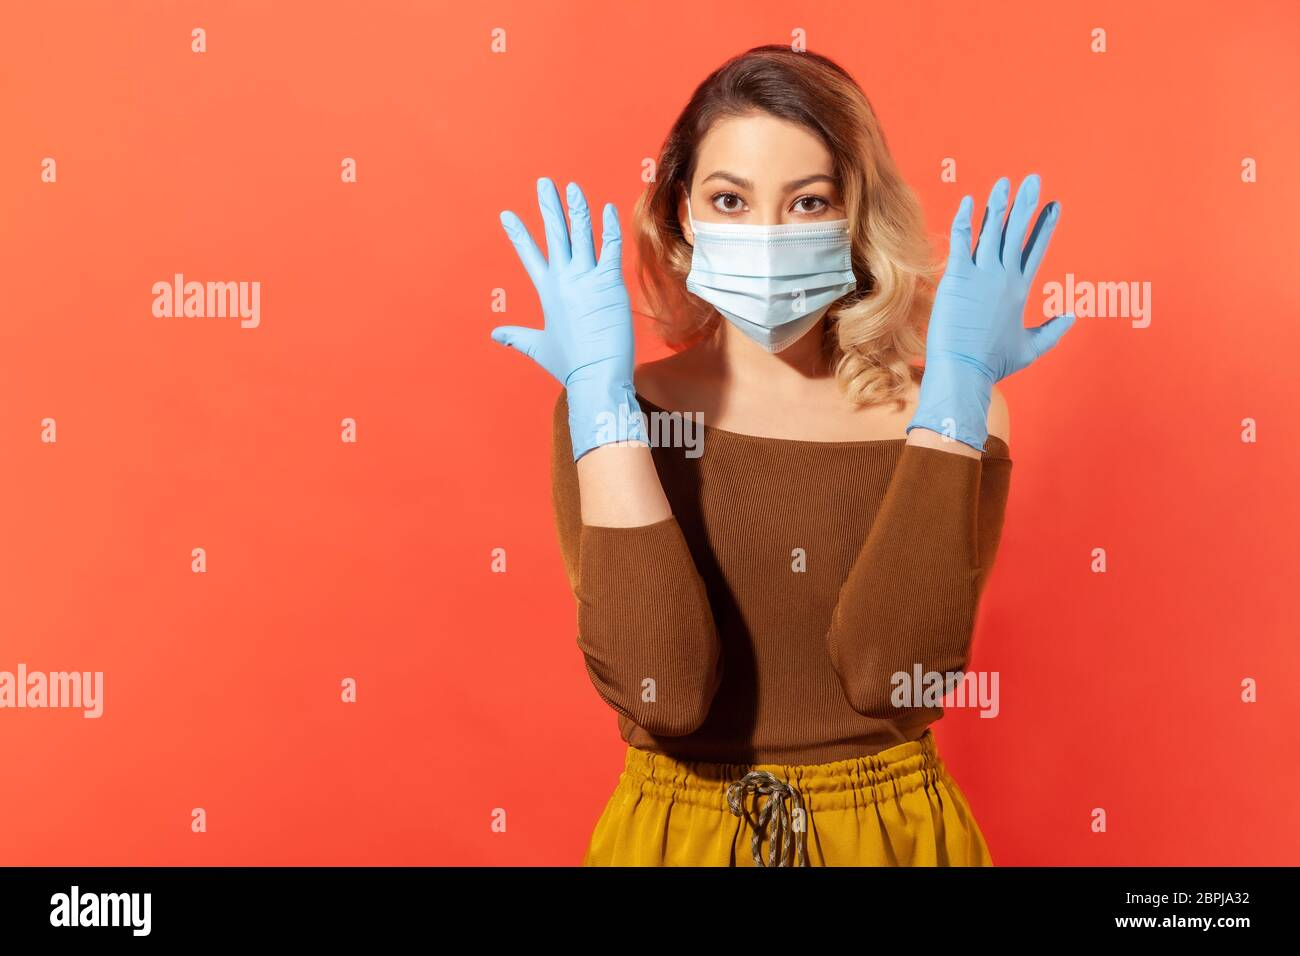 Portrait of woman wearing surgical face mask and gloves to prevent viral disease, coronavirus pandemic threat, 2019-ncov protection recommendations. i Stock Photo